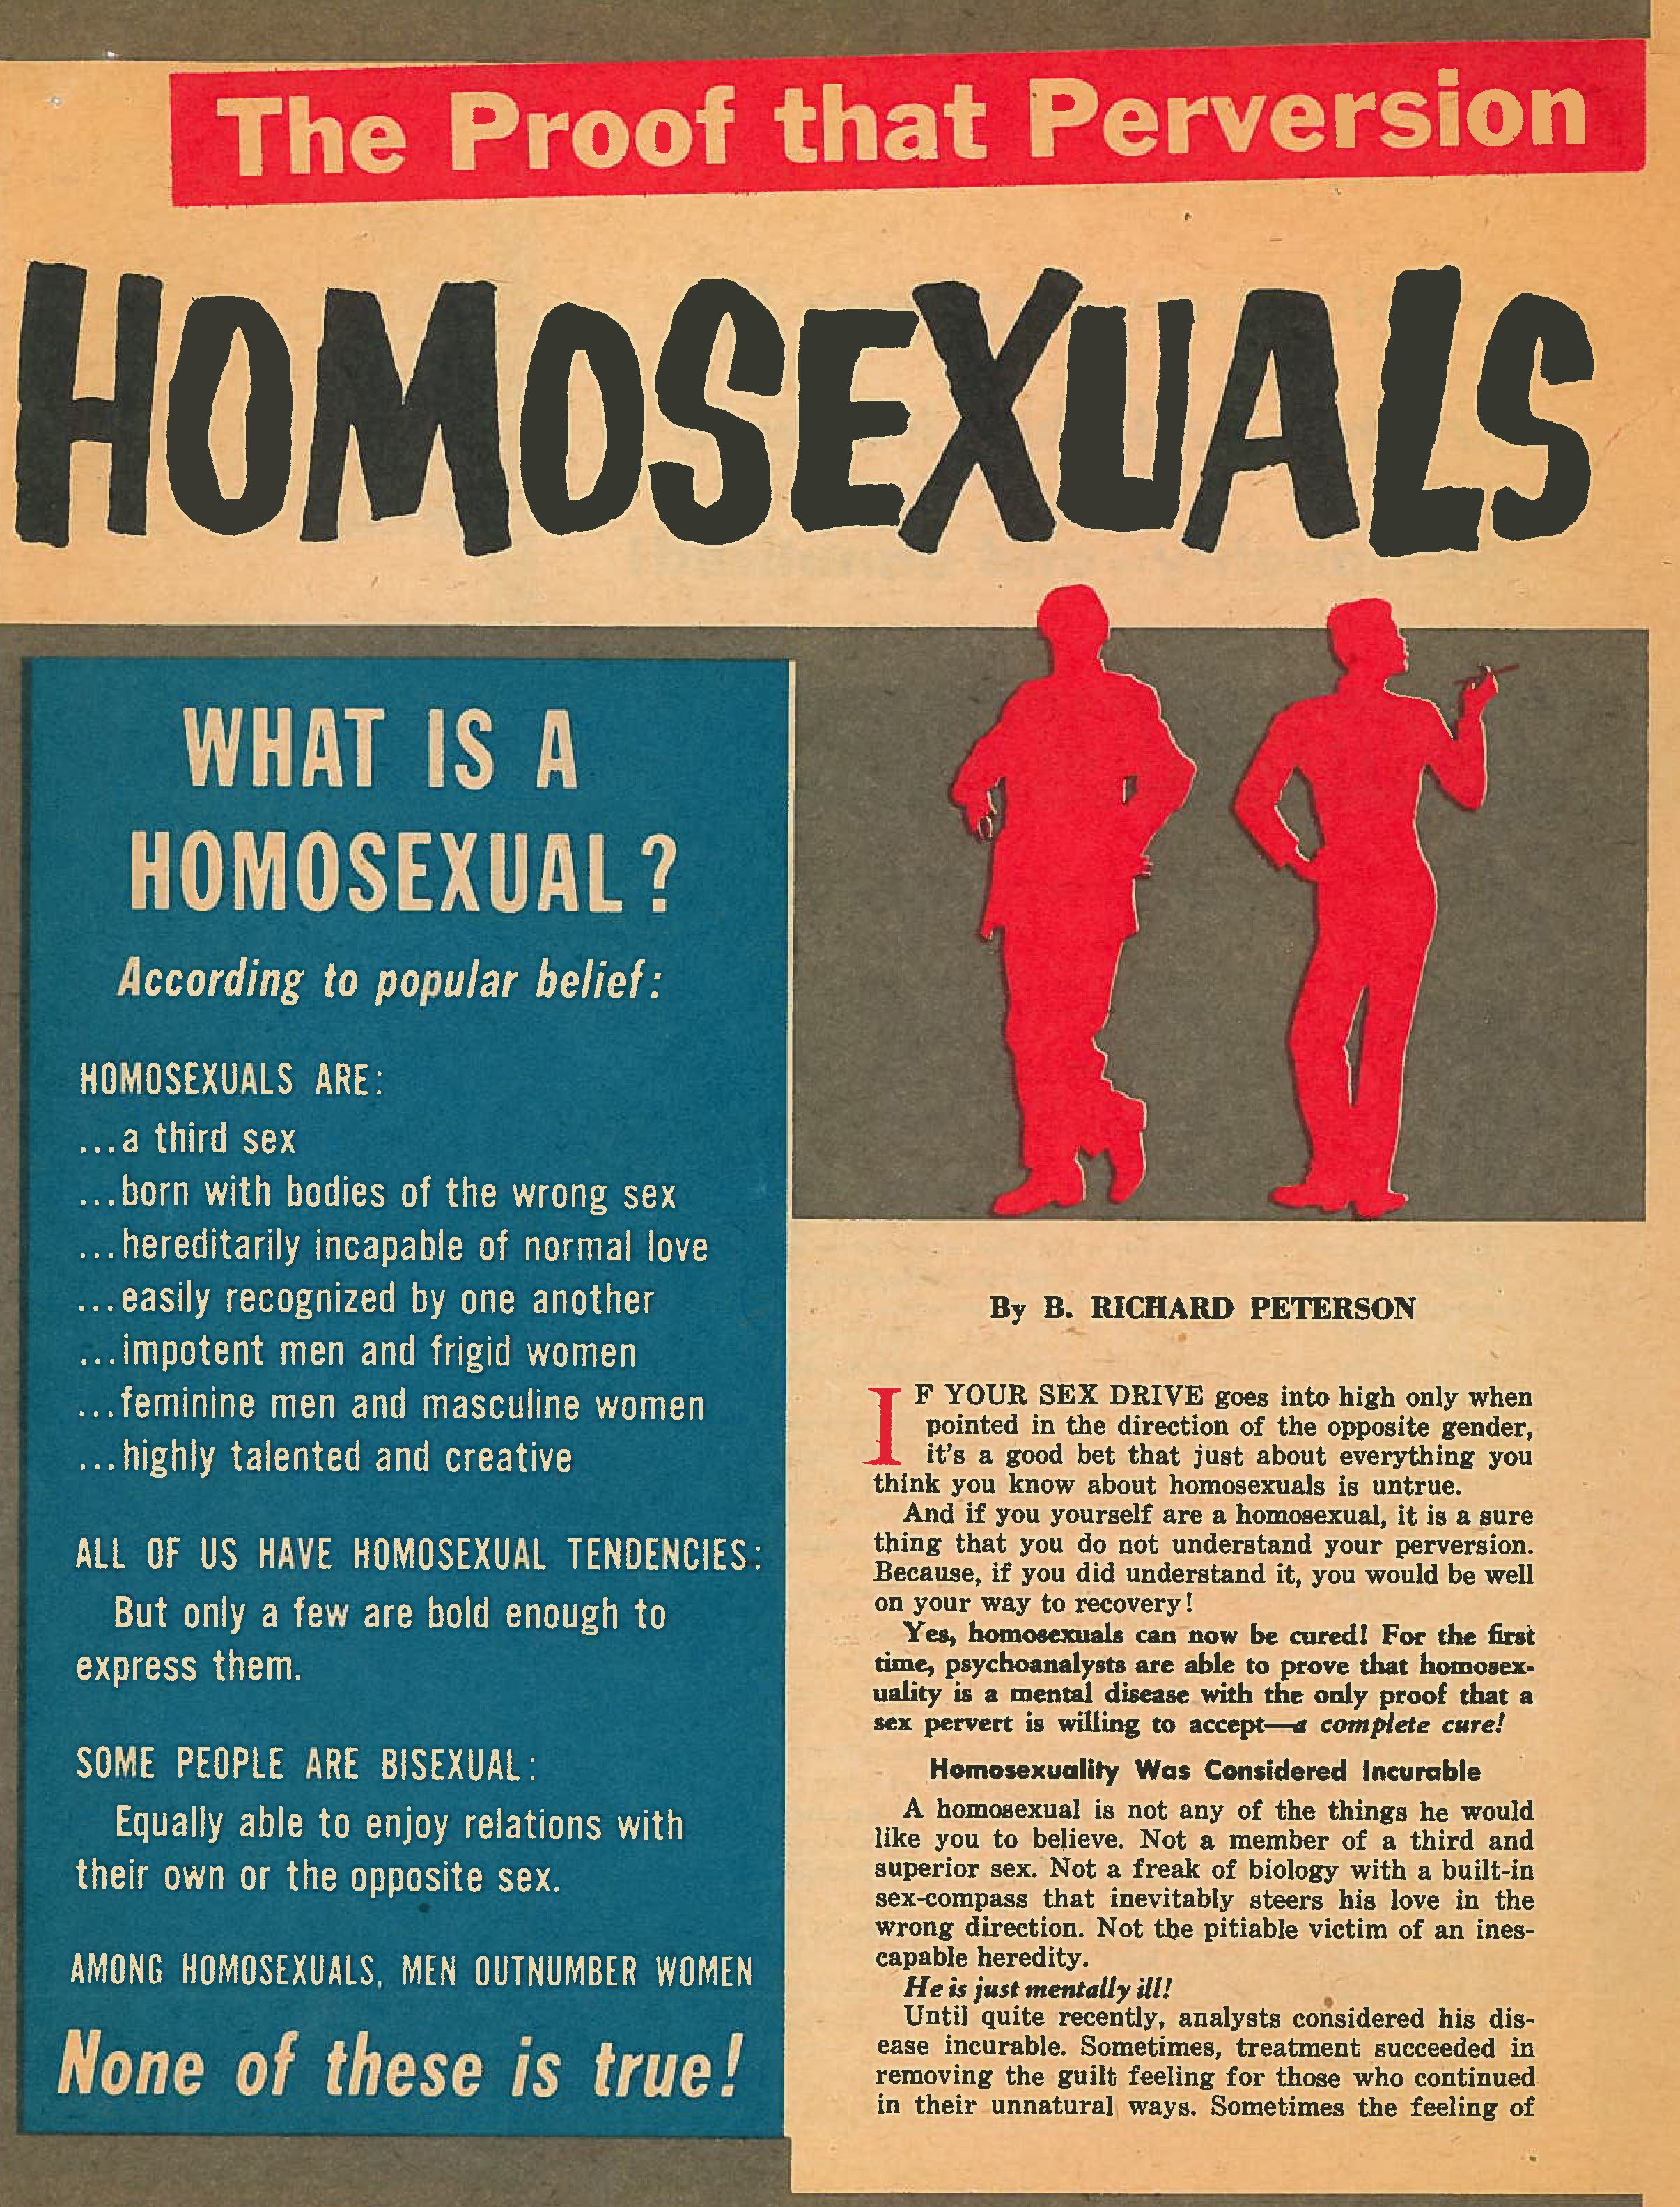 from Arthur gay rights 1970s